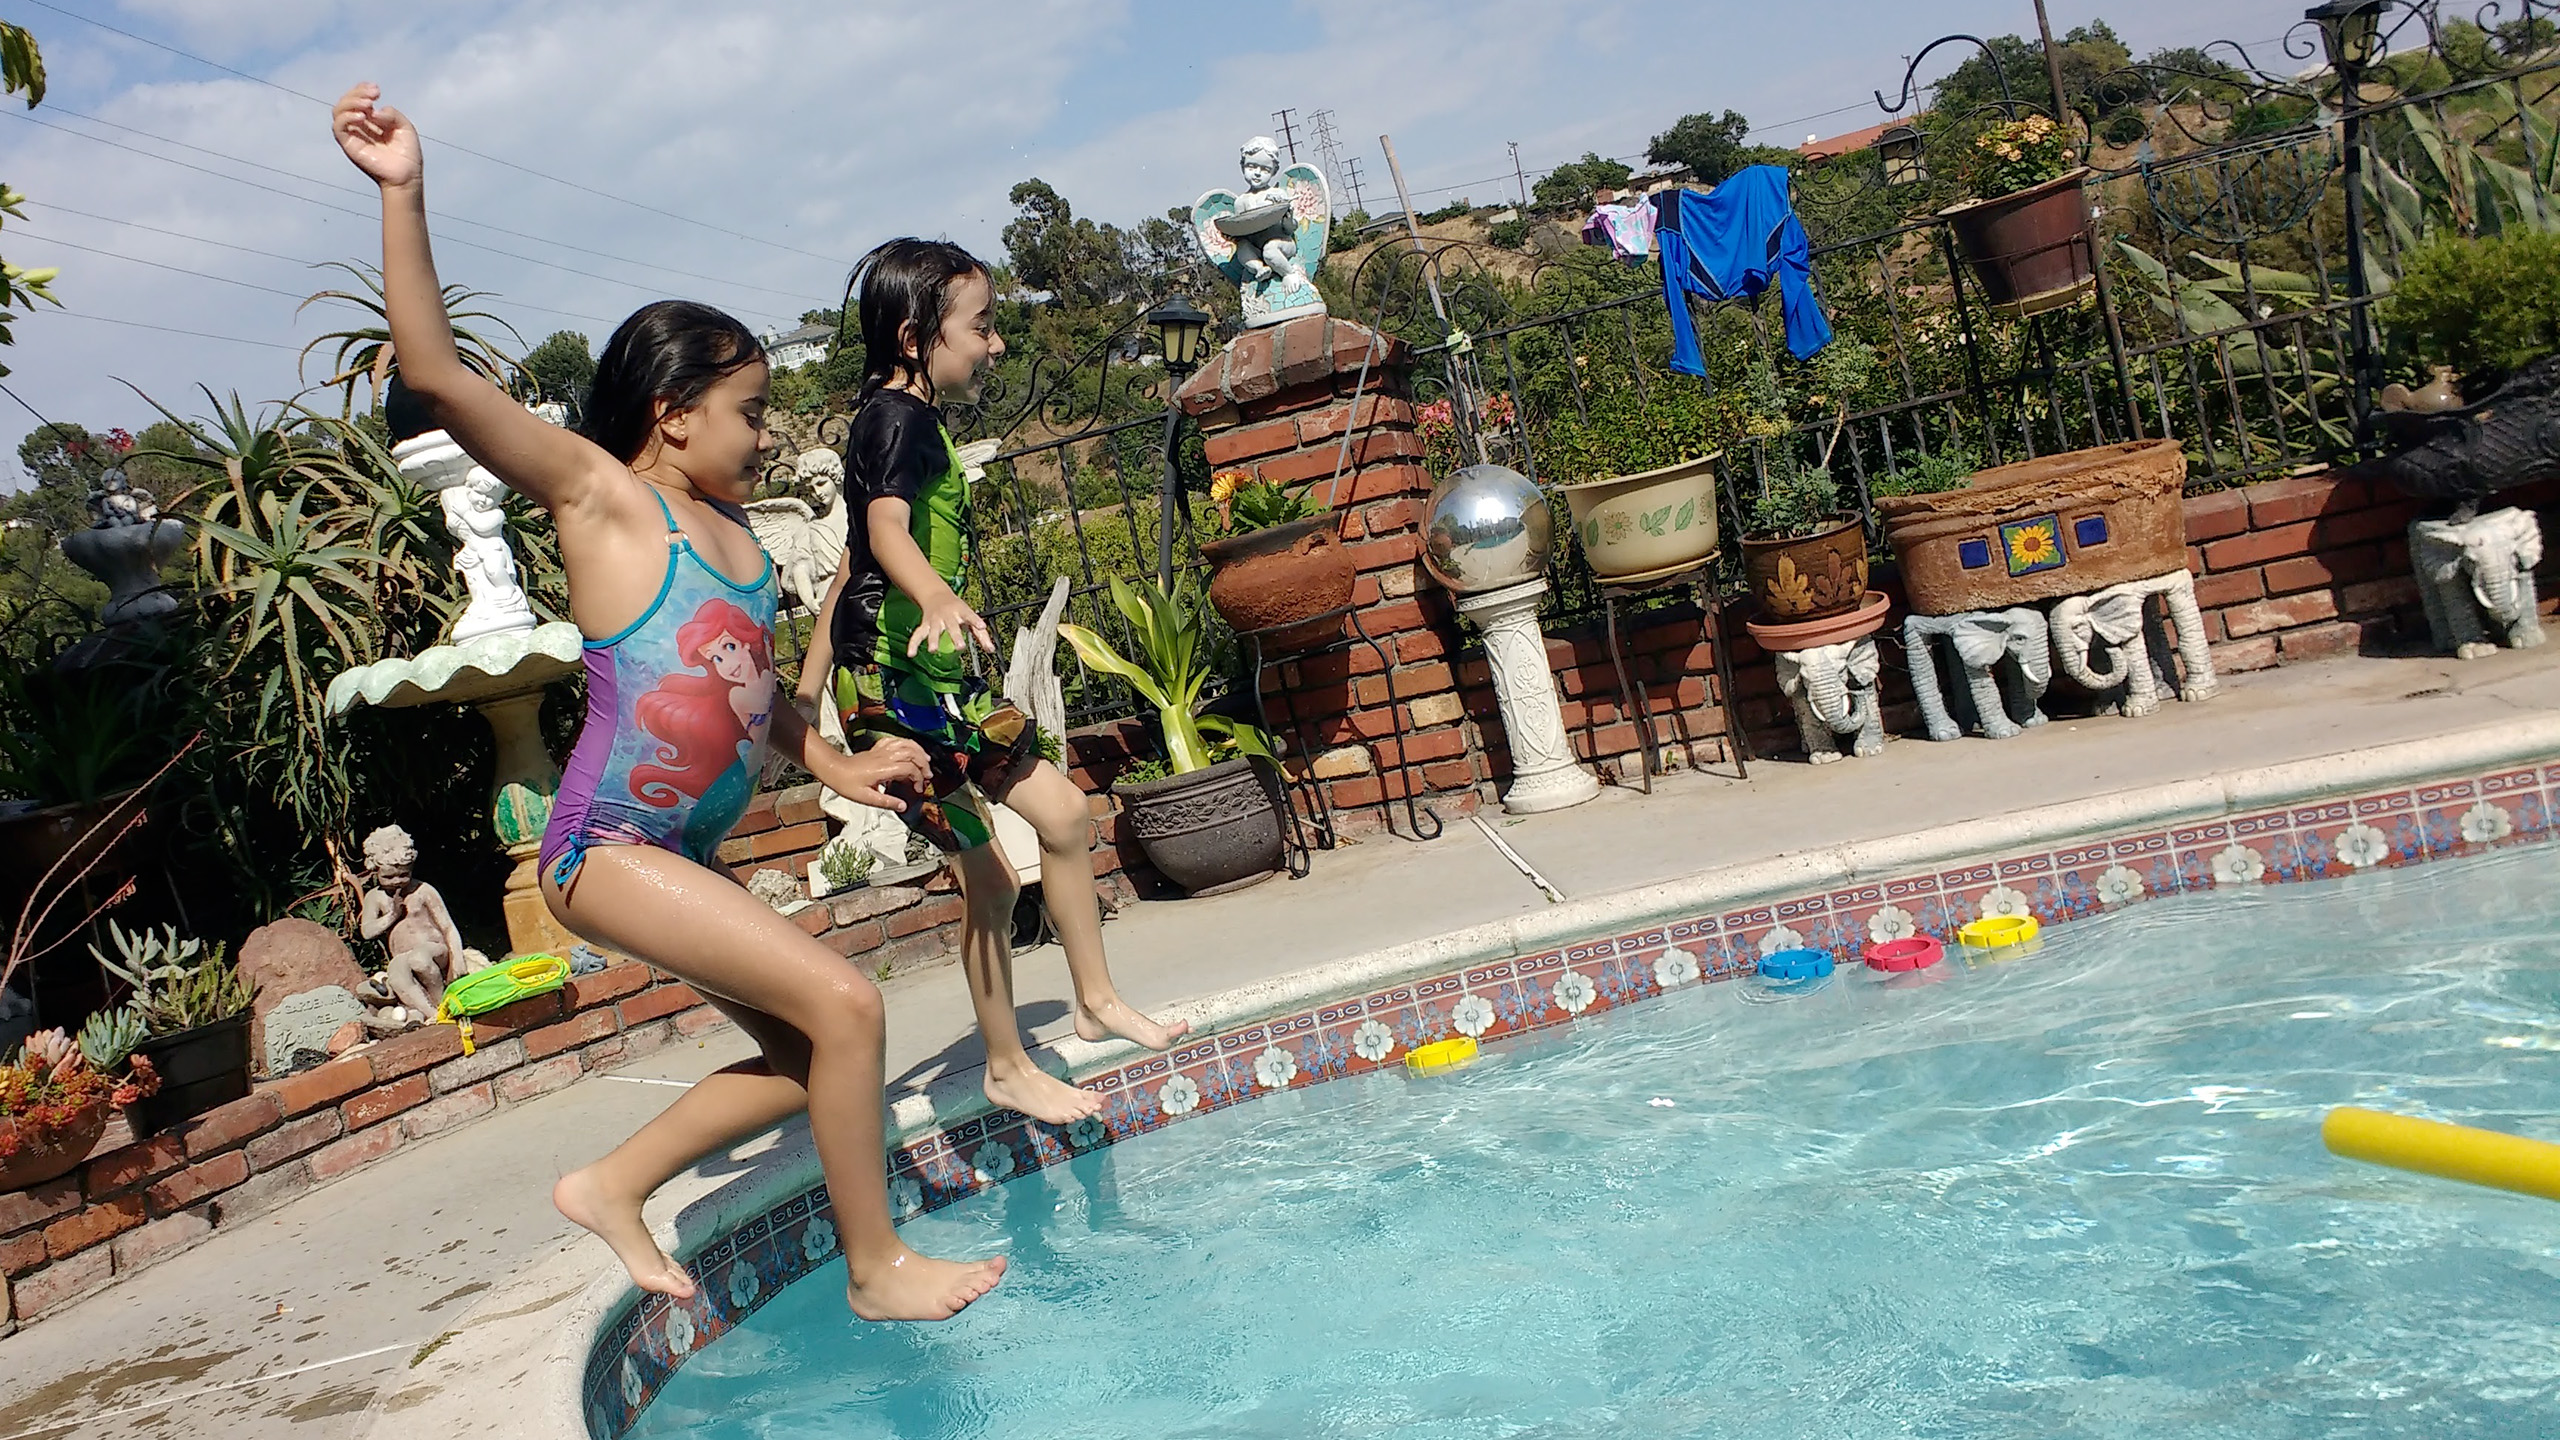 Chanielle & Dominic diving to adventure at a pool party at mom's!